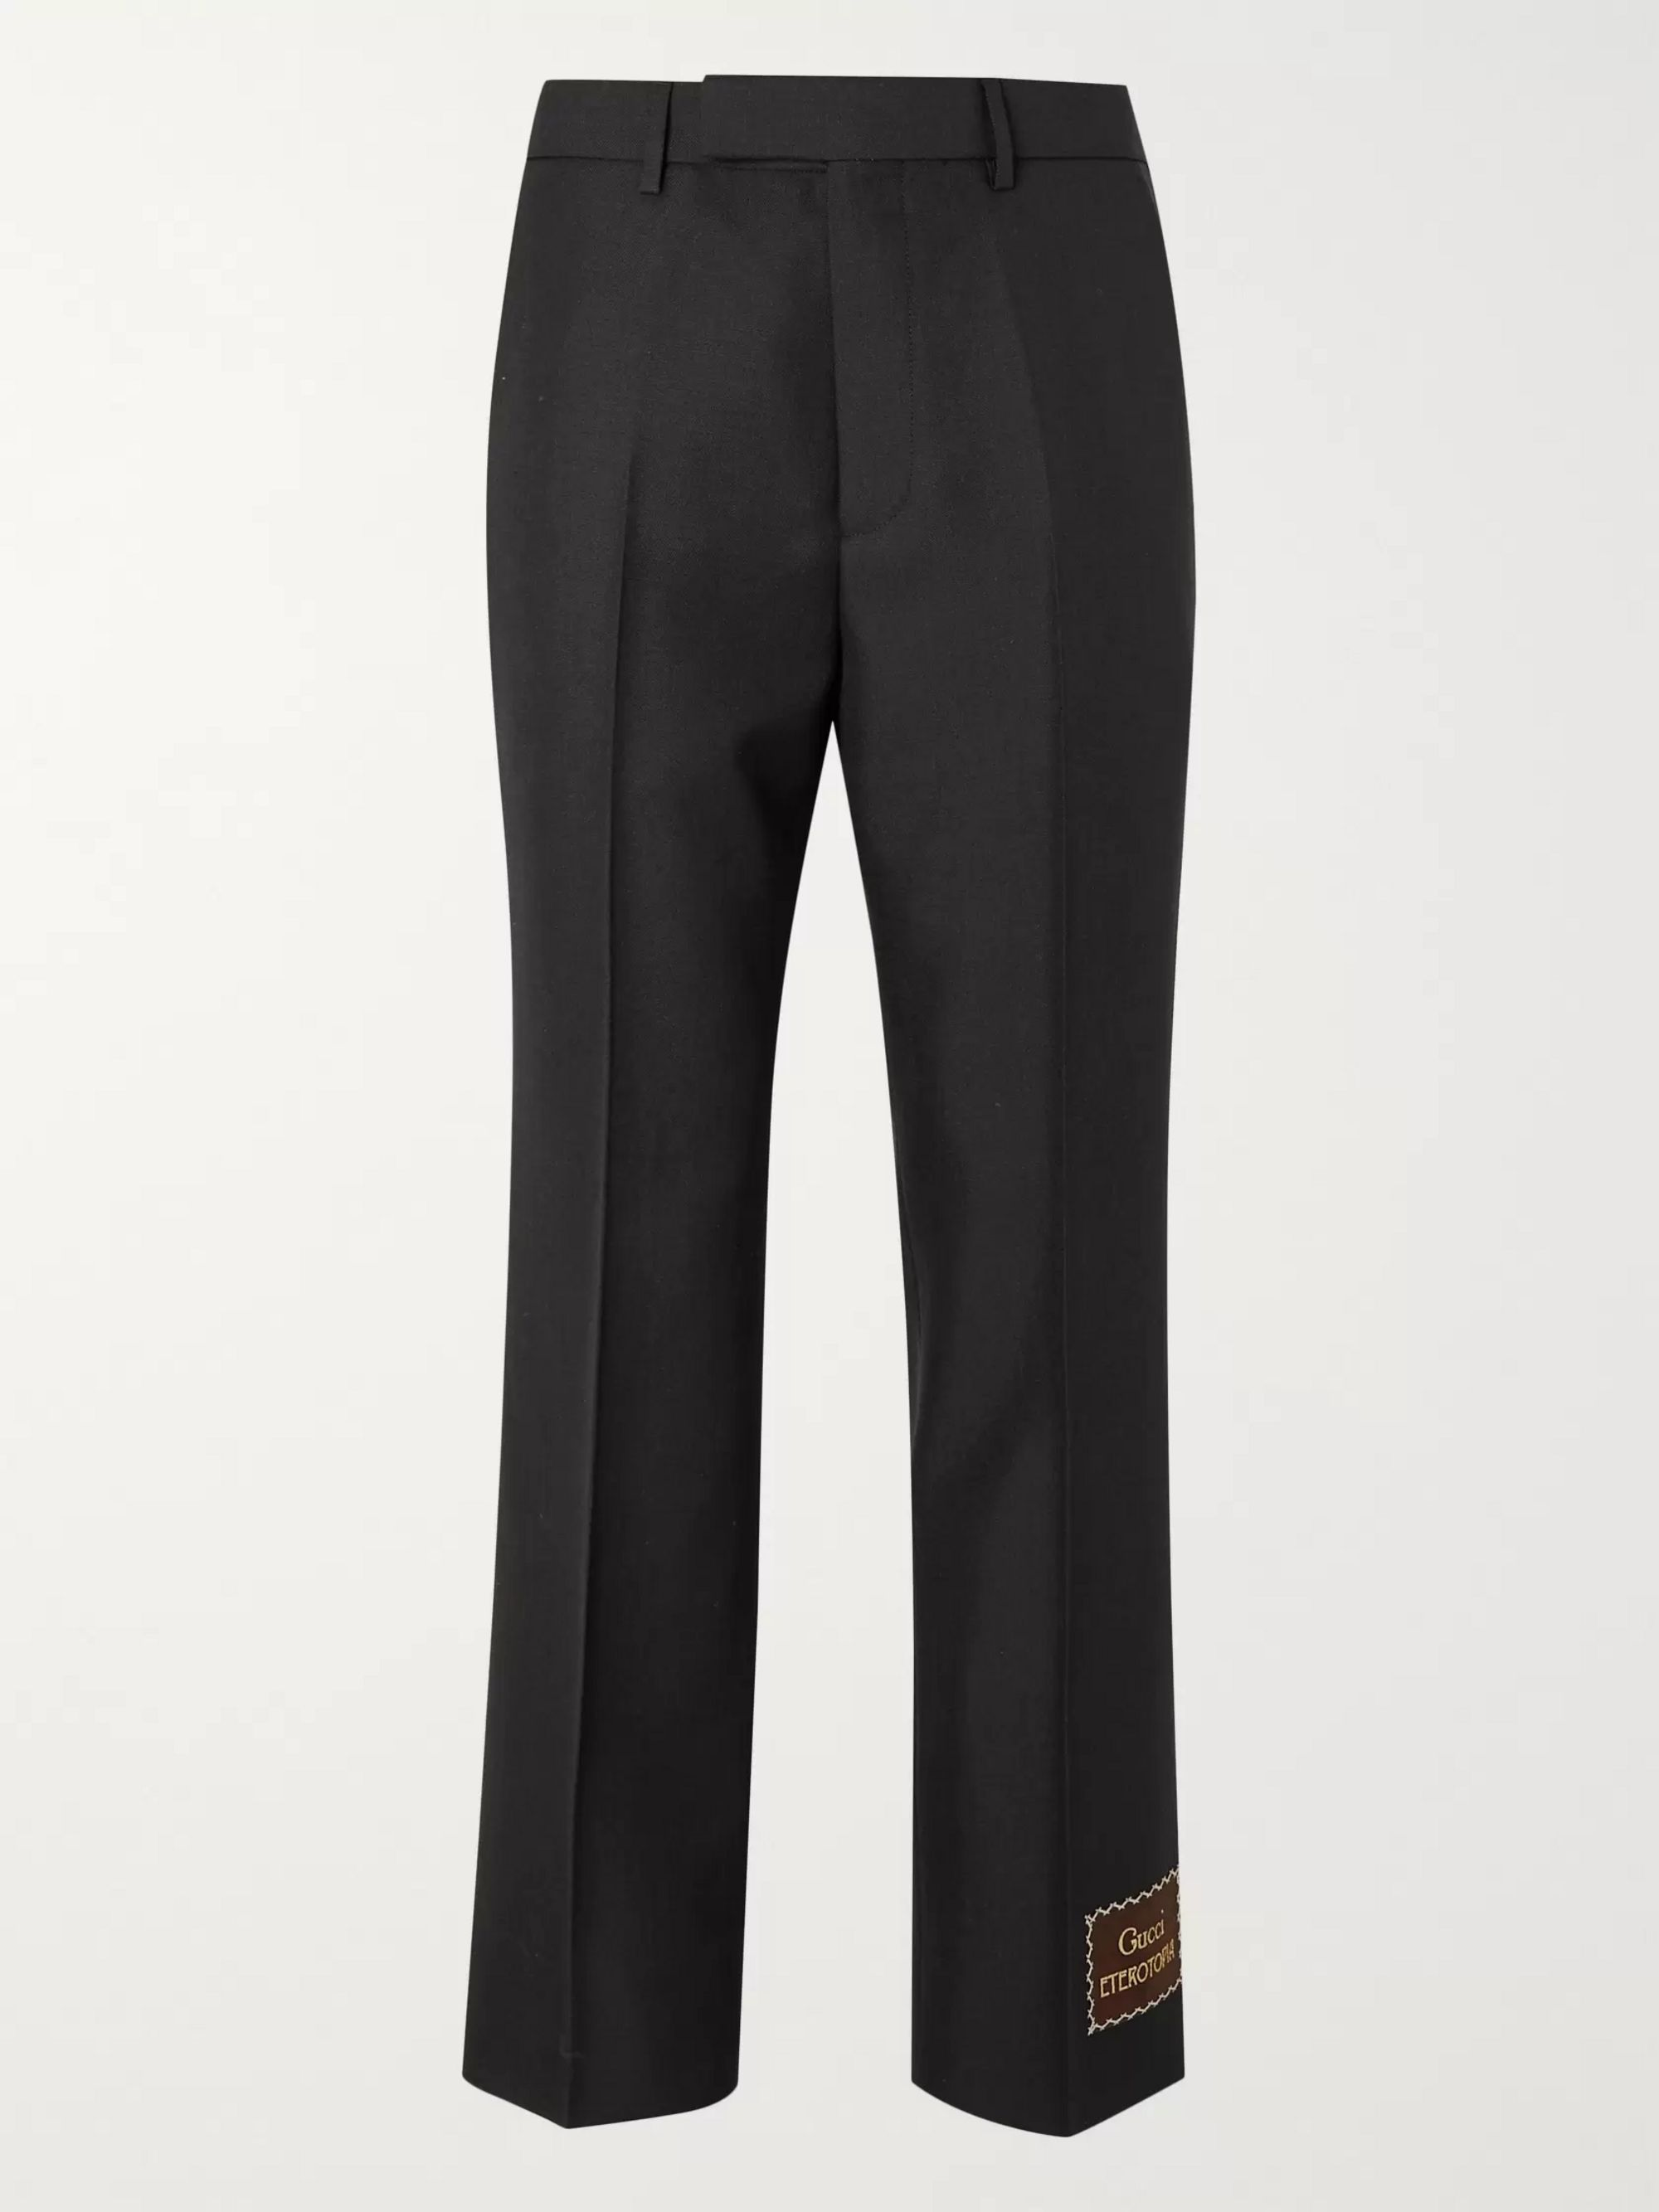 Gucci Cropped Flared Logo-Appliquéd Wool and Mohair-Blend Trousers